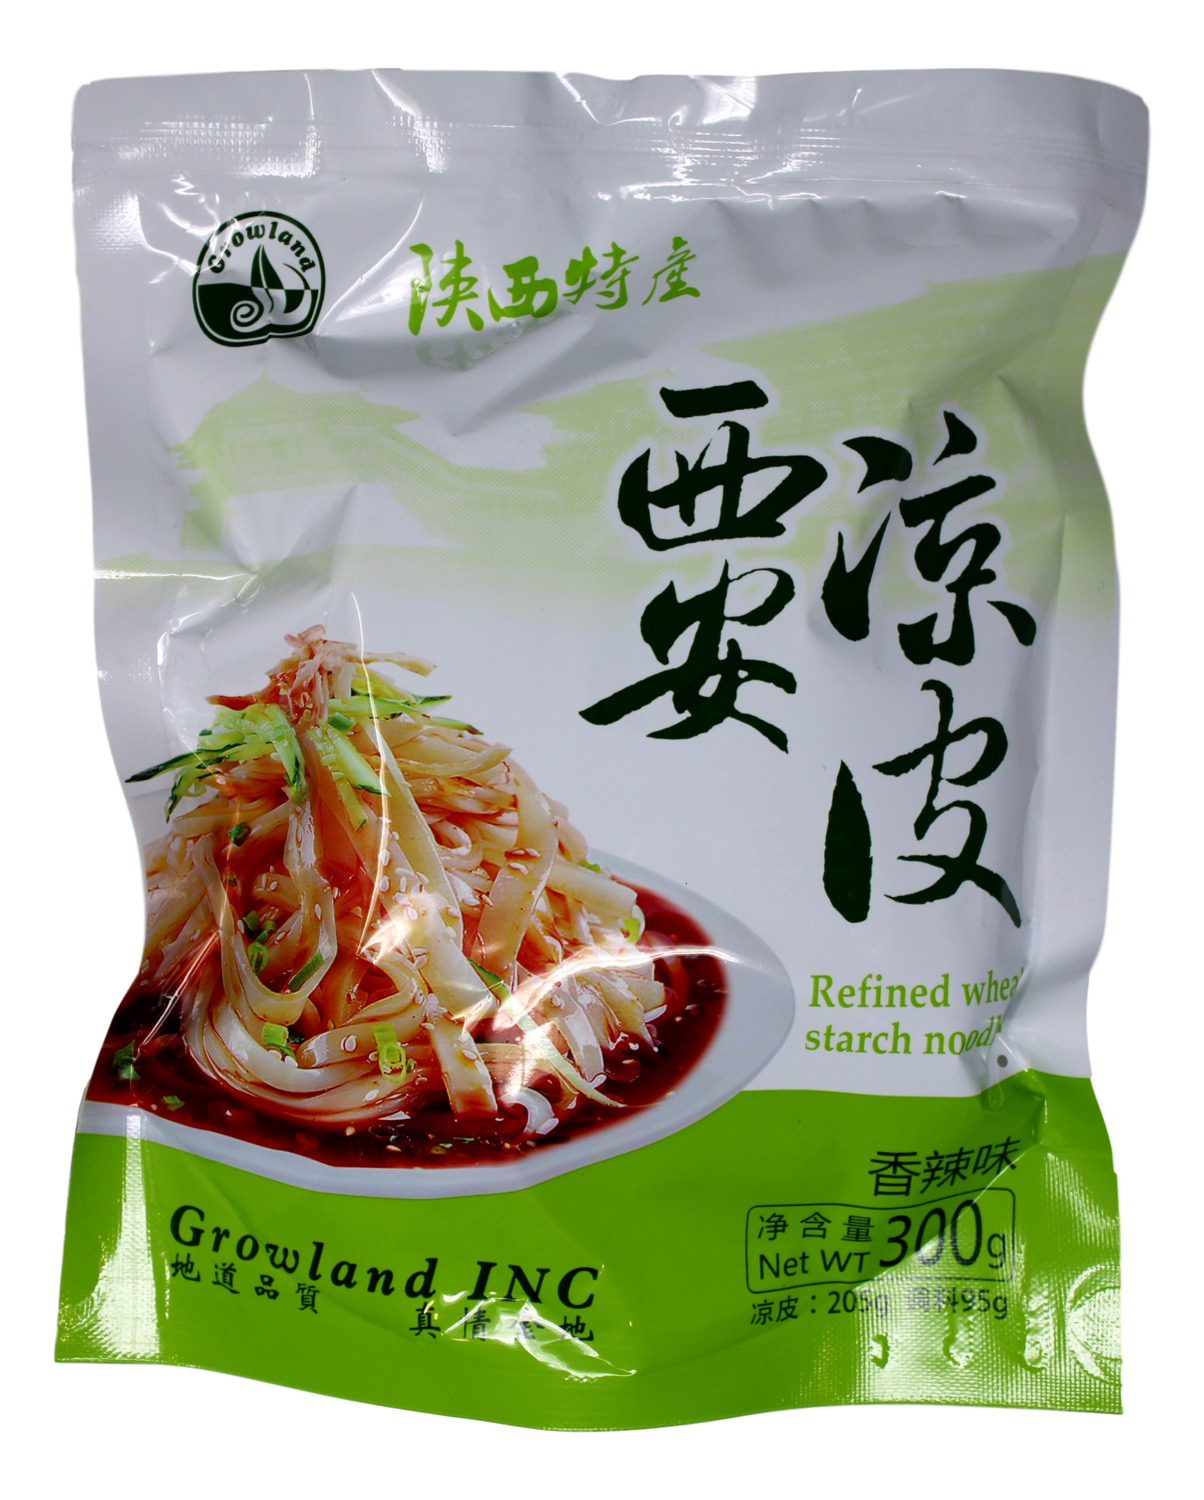 REFINED WHEAT STARCH NOODLE  陕西特产 西安凉皮(116G)